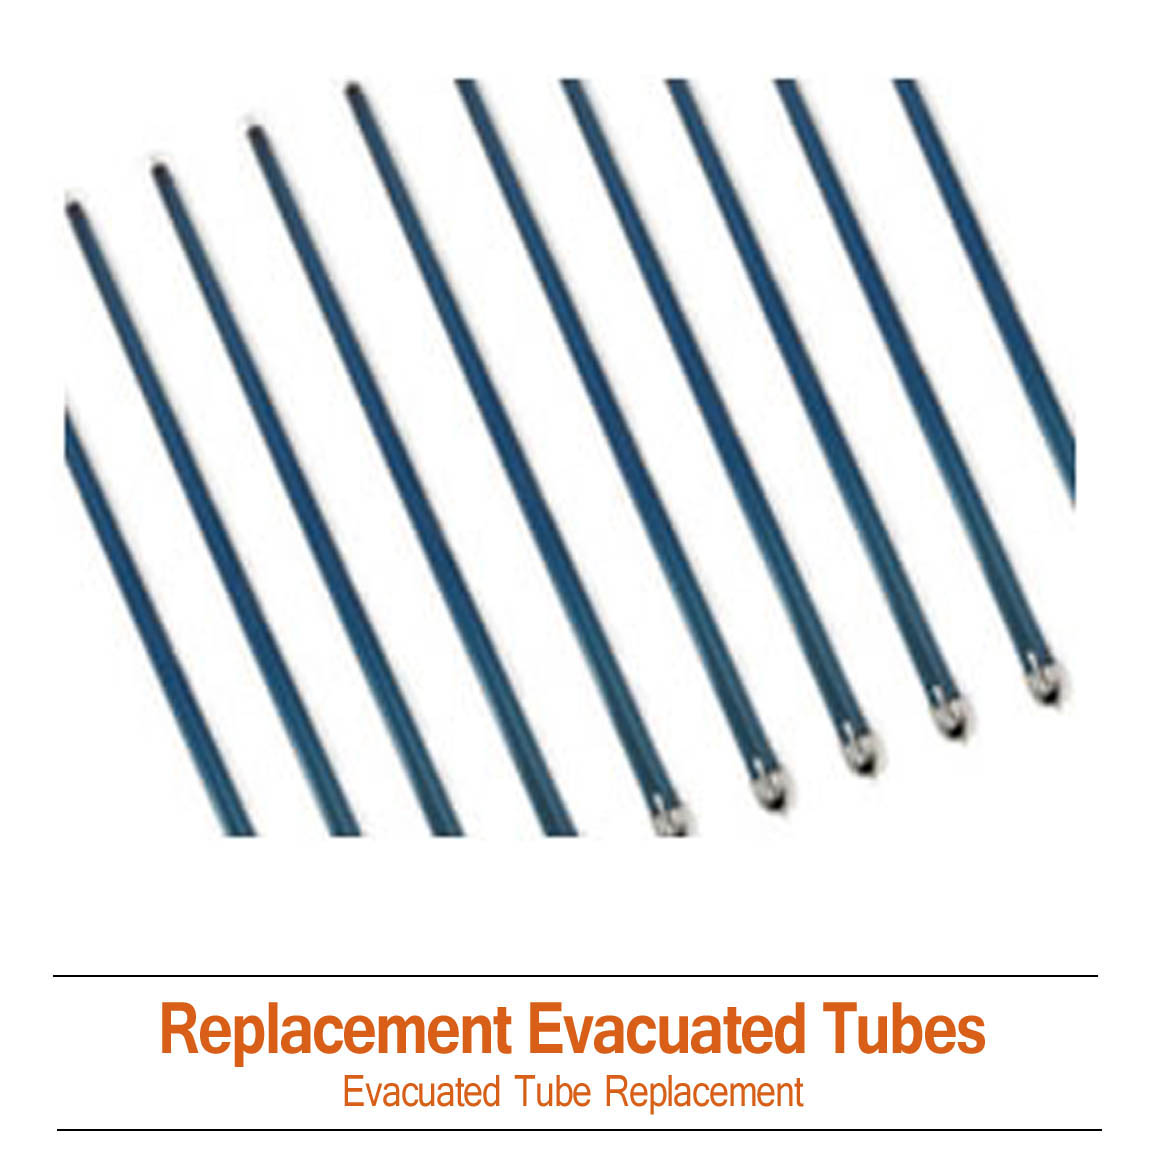 Replacement Evacuated Tubes